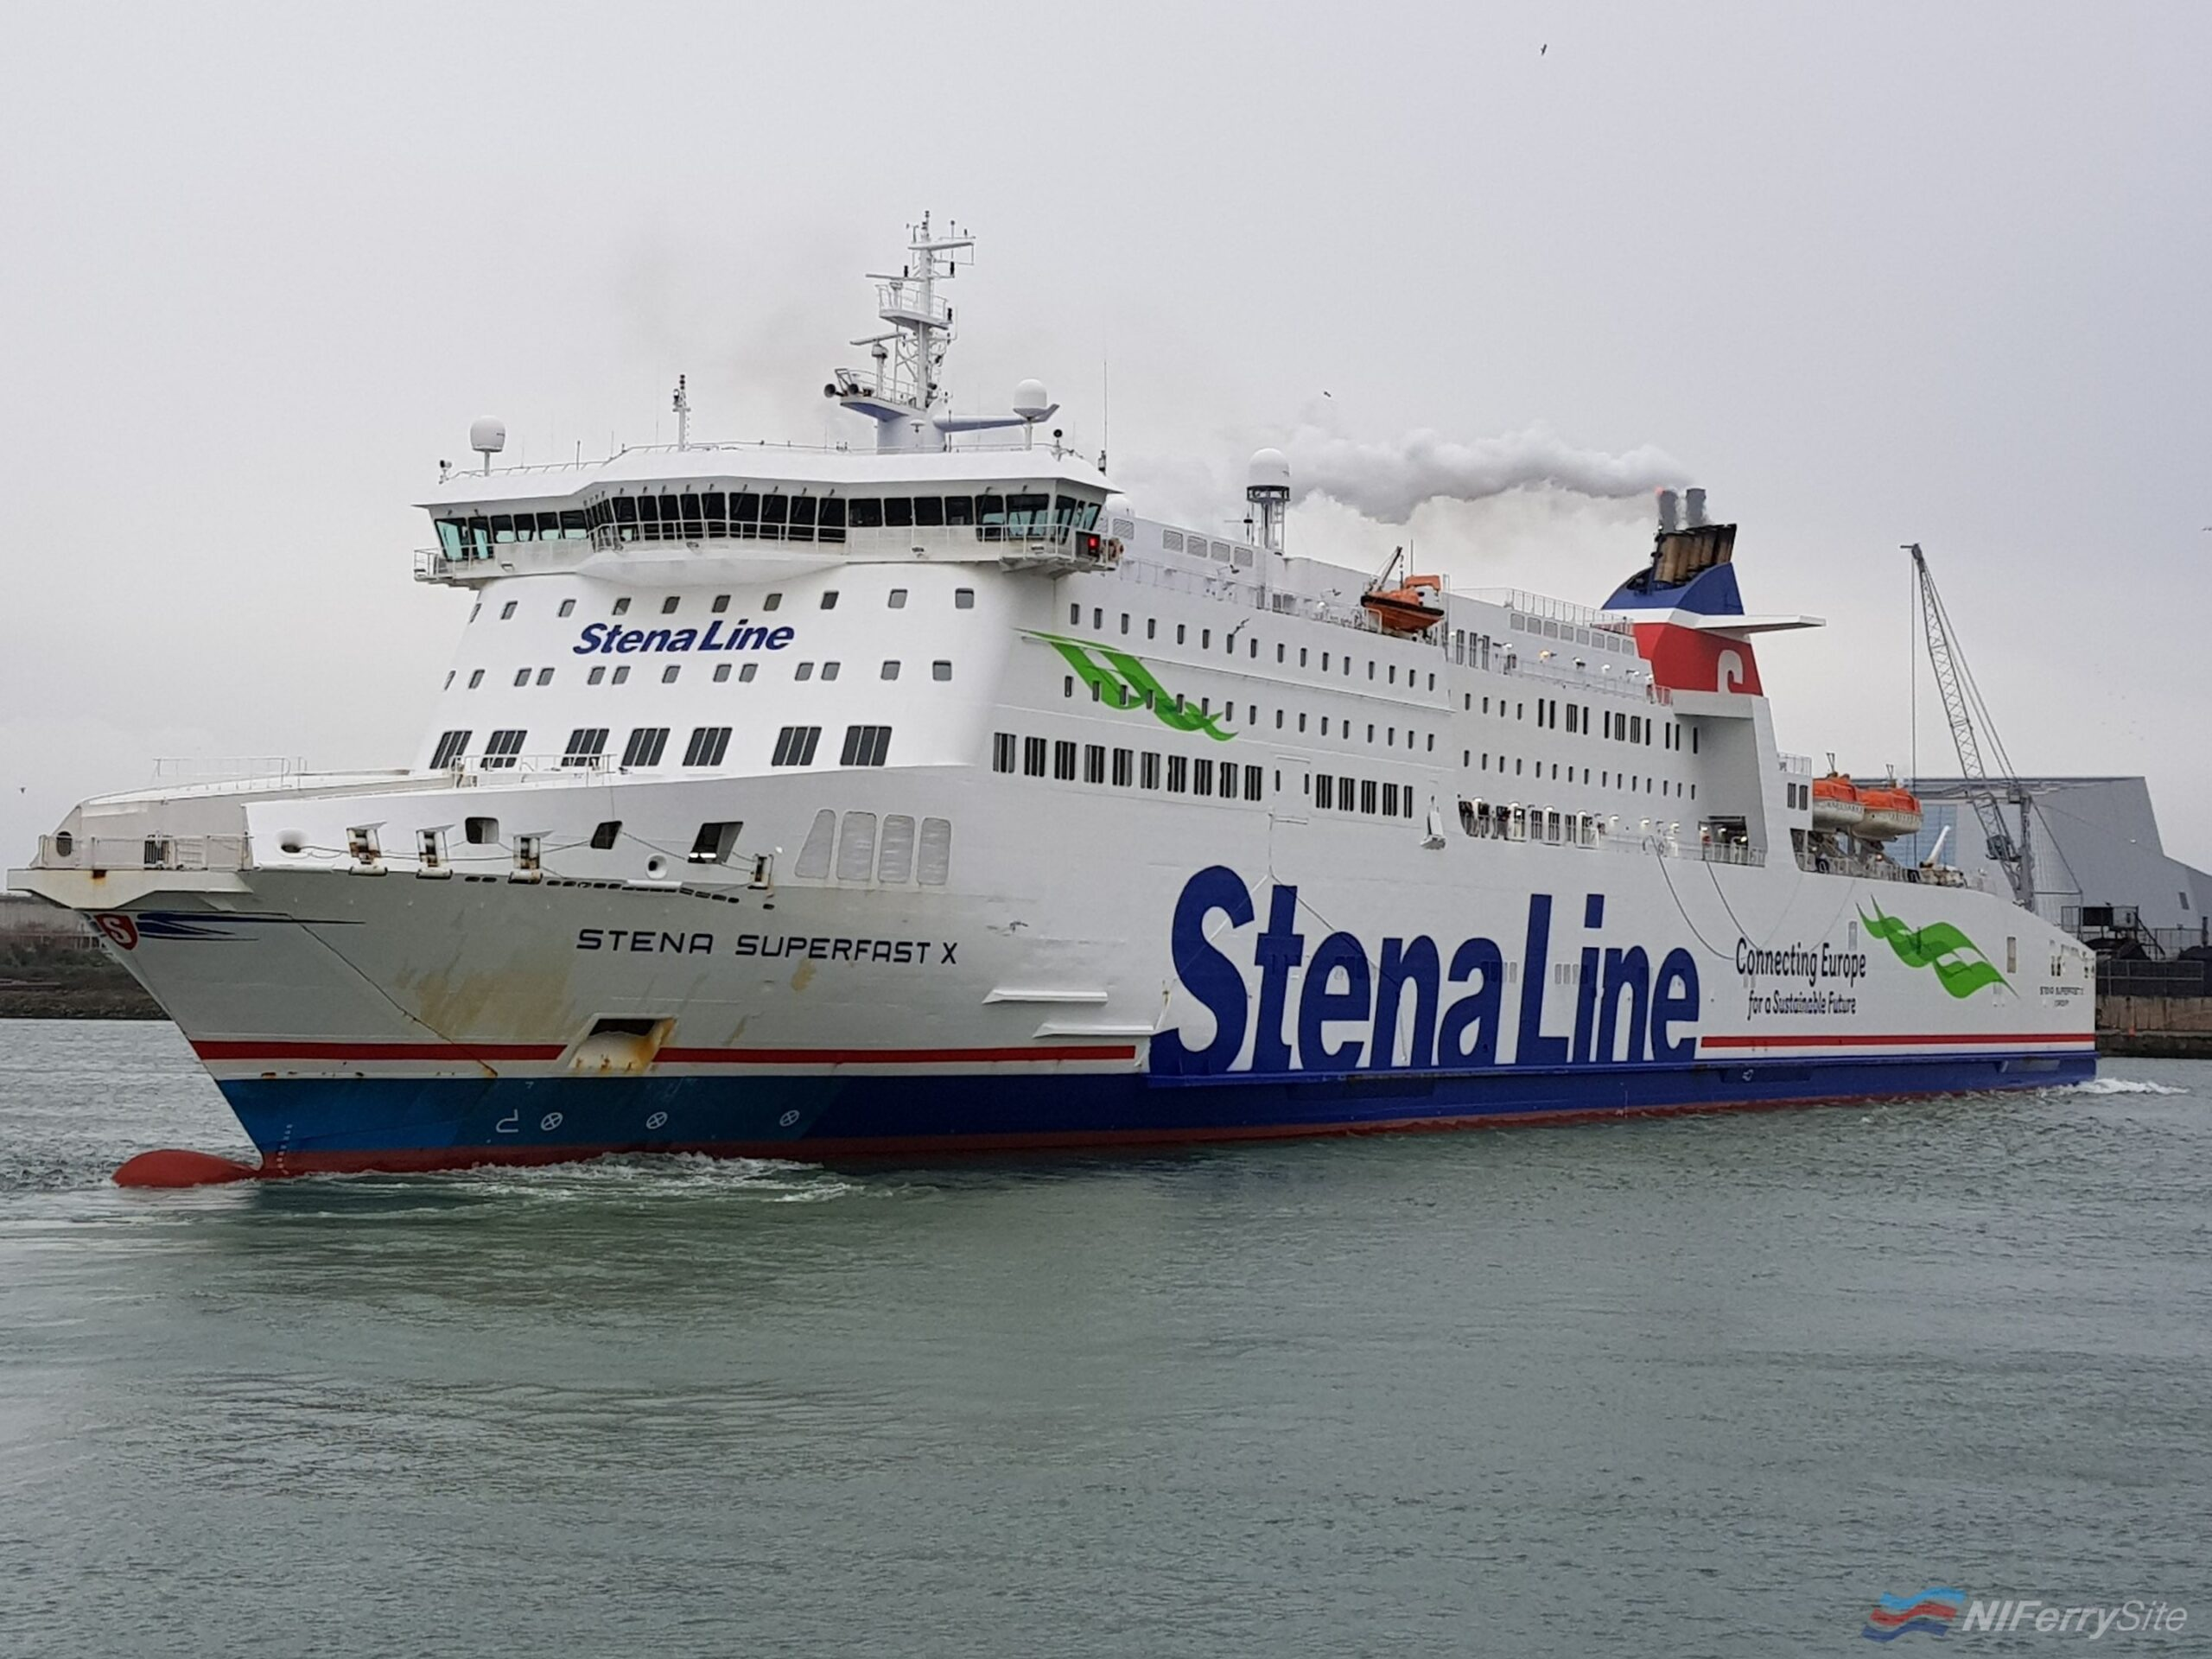 STENA SUPERFAST X seen backing off Dublin Port's Berth 51 during March 2019. Copyright © Robbie Cox.